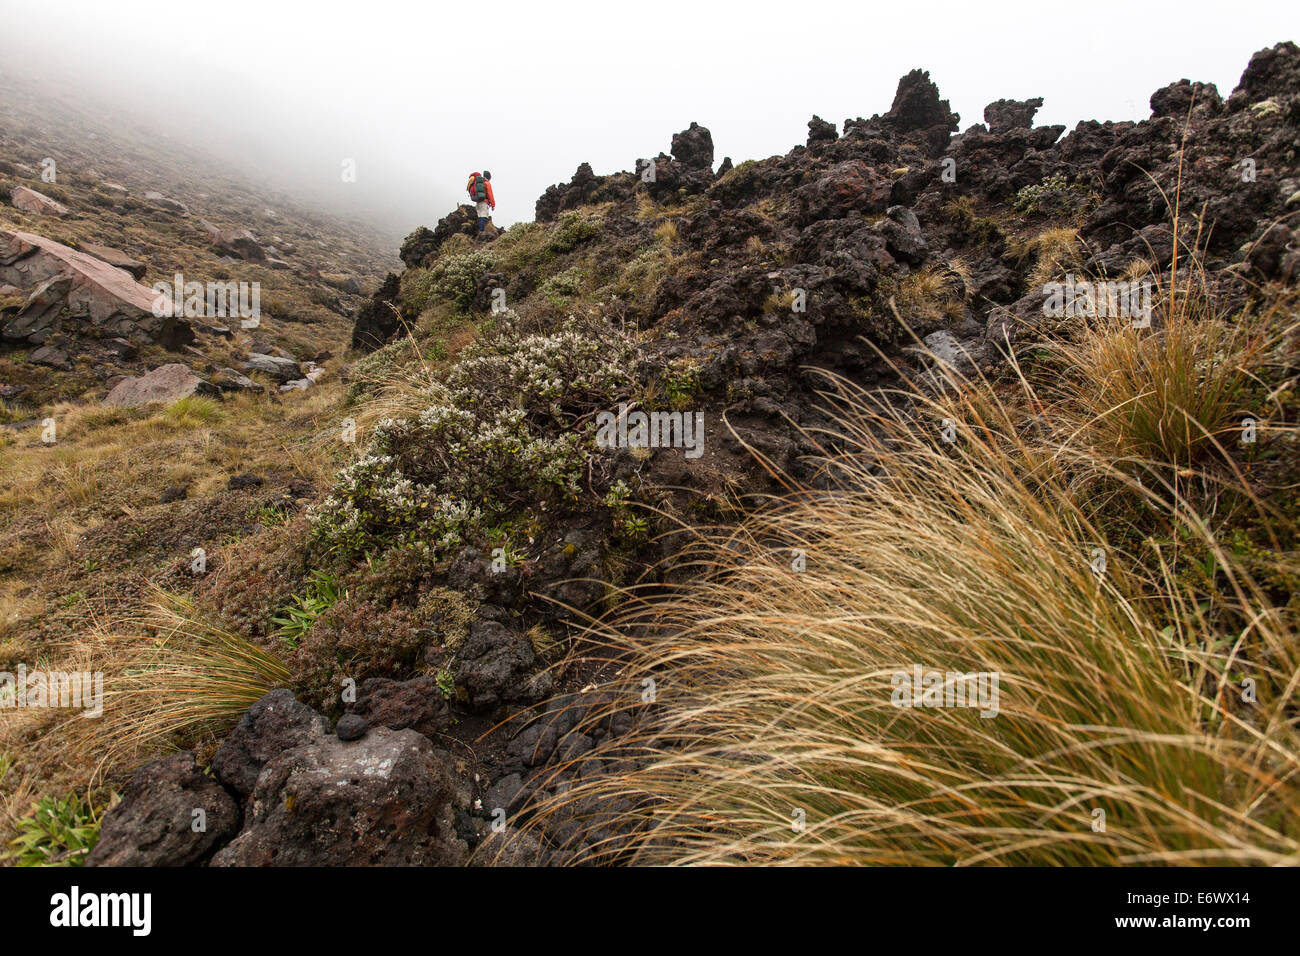 Trek through volcanic terrain, Tongariro Alpine Crossing, Great Walk, Tongariro National Park, World Heritage, North - Stock Image